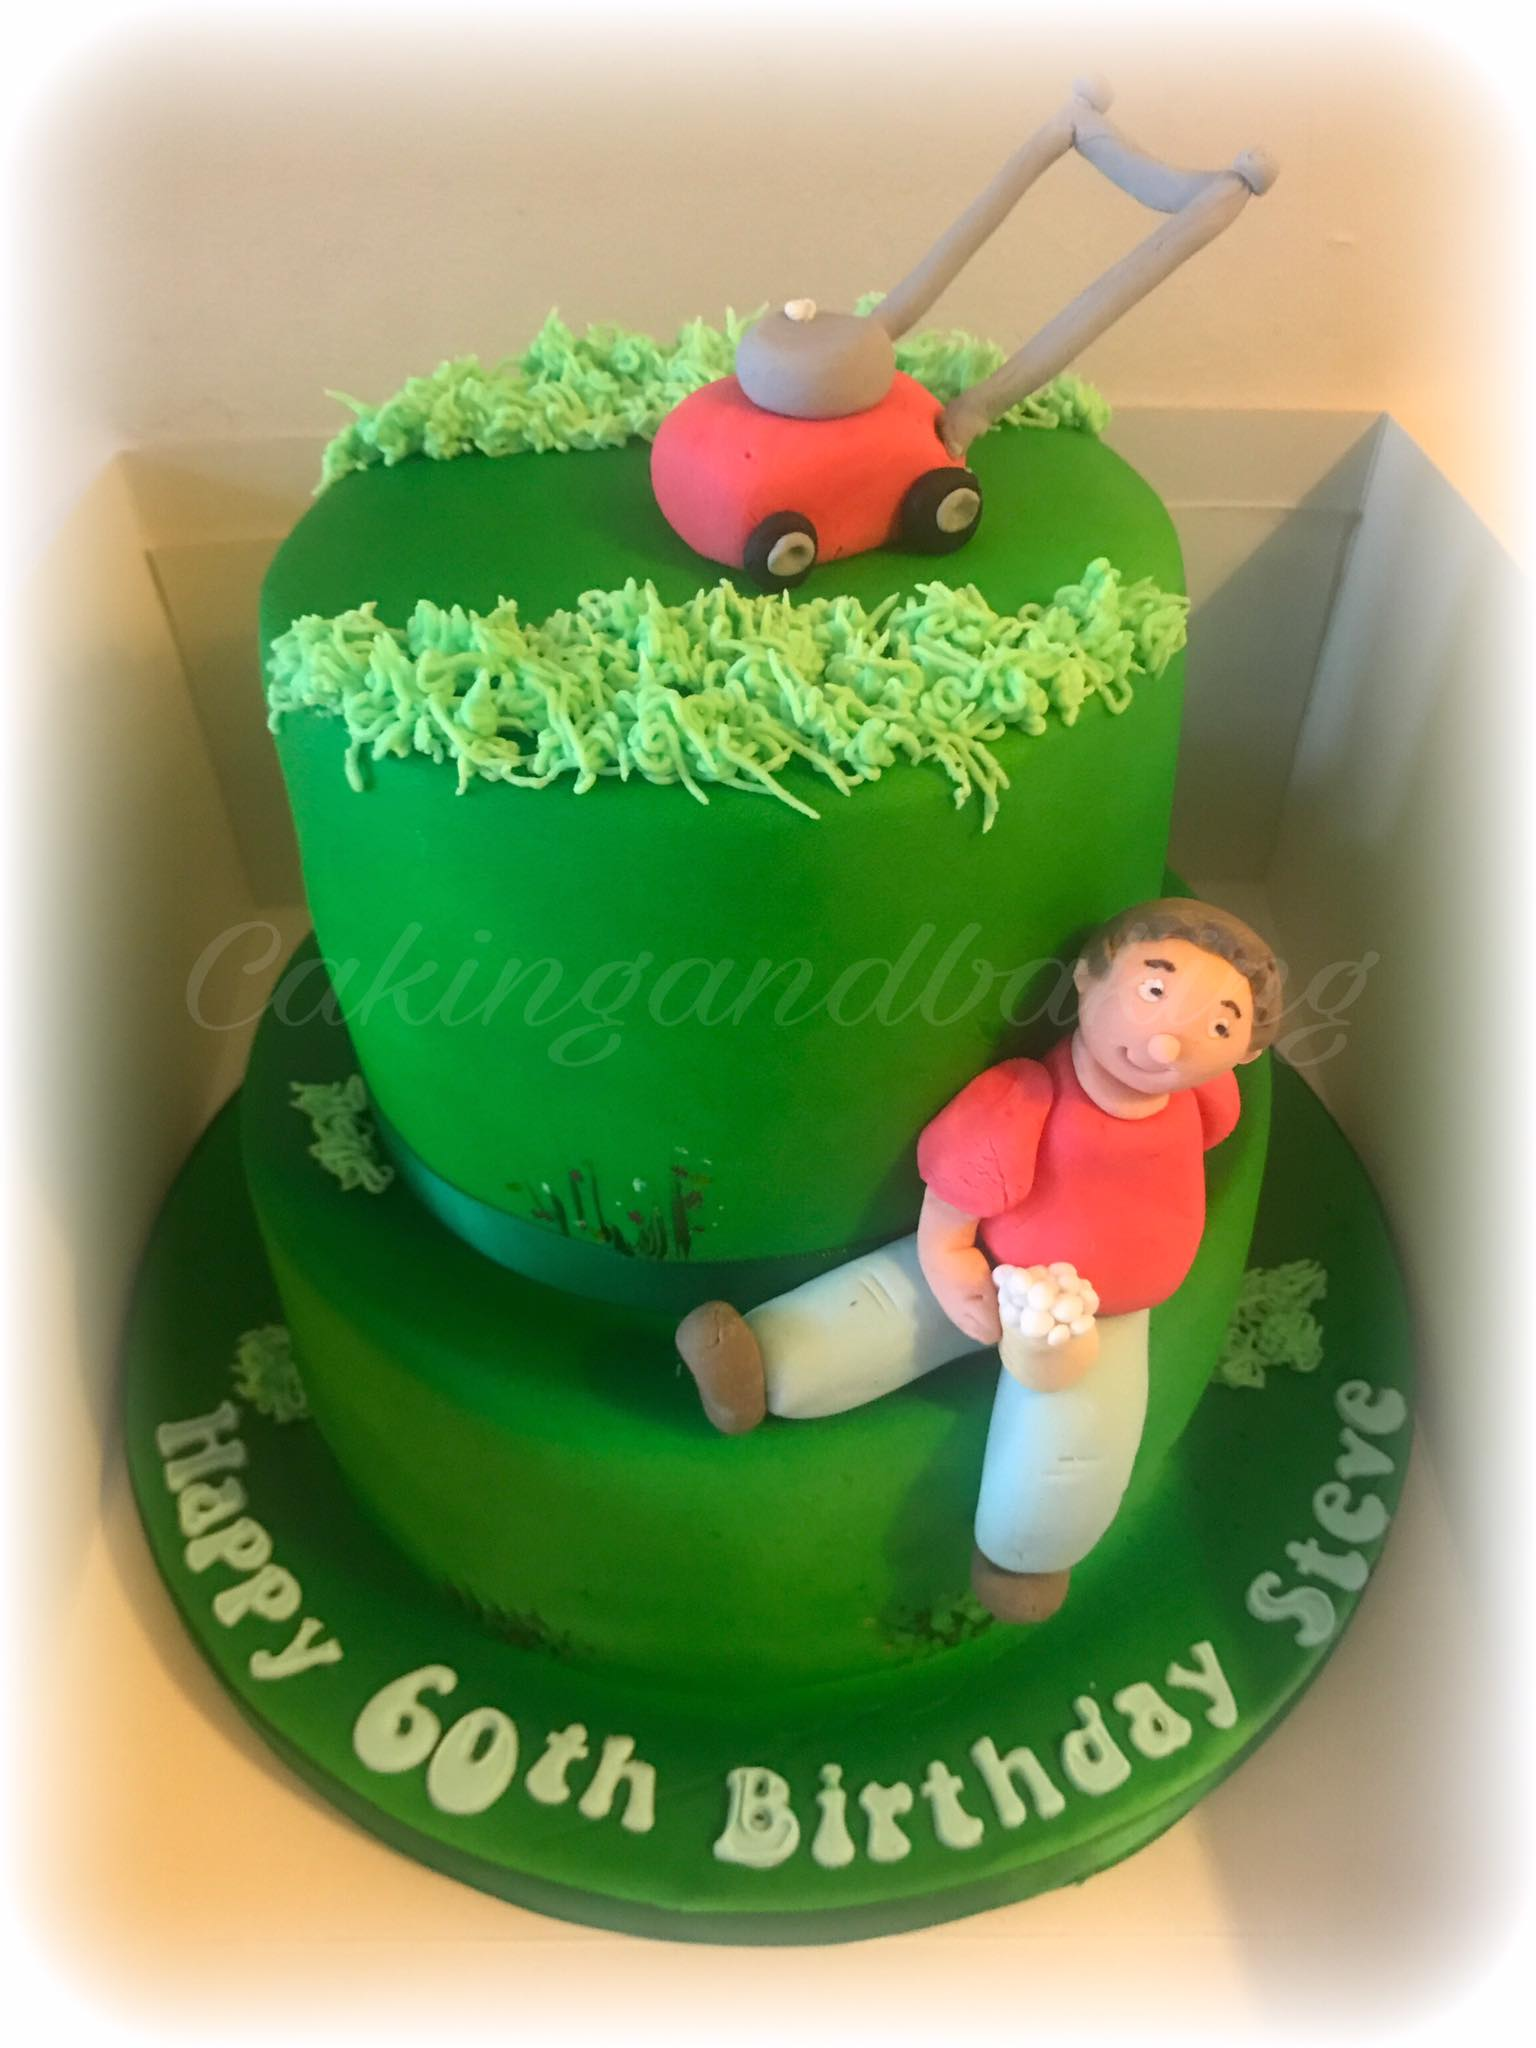 Gardening Cake • Caking and Baking • Sweet As • Leamington Spa ...